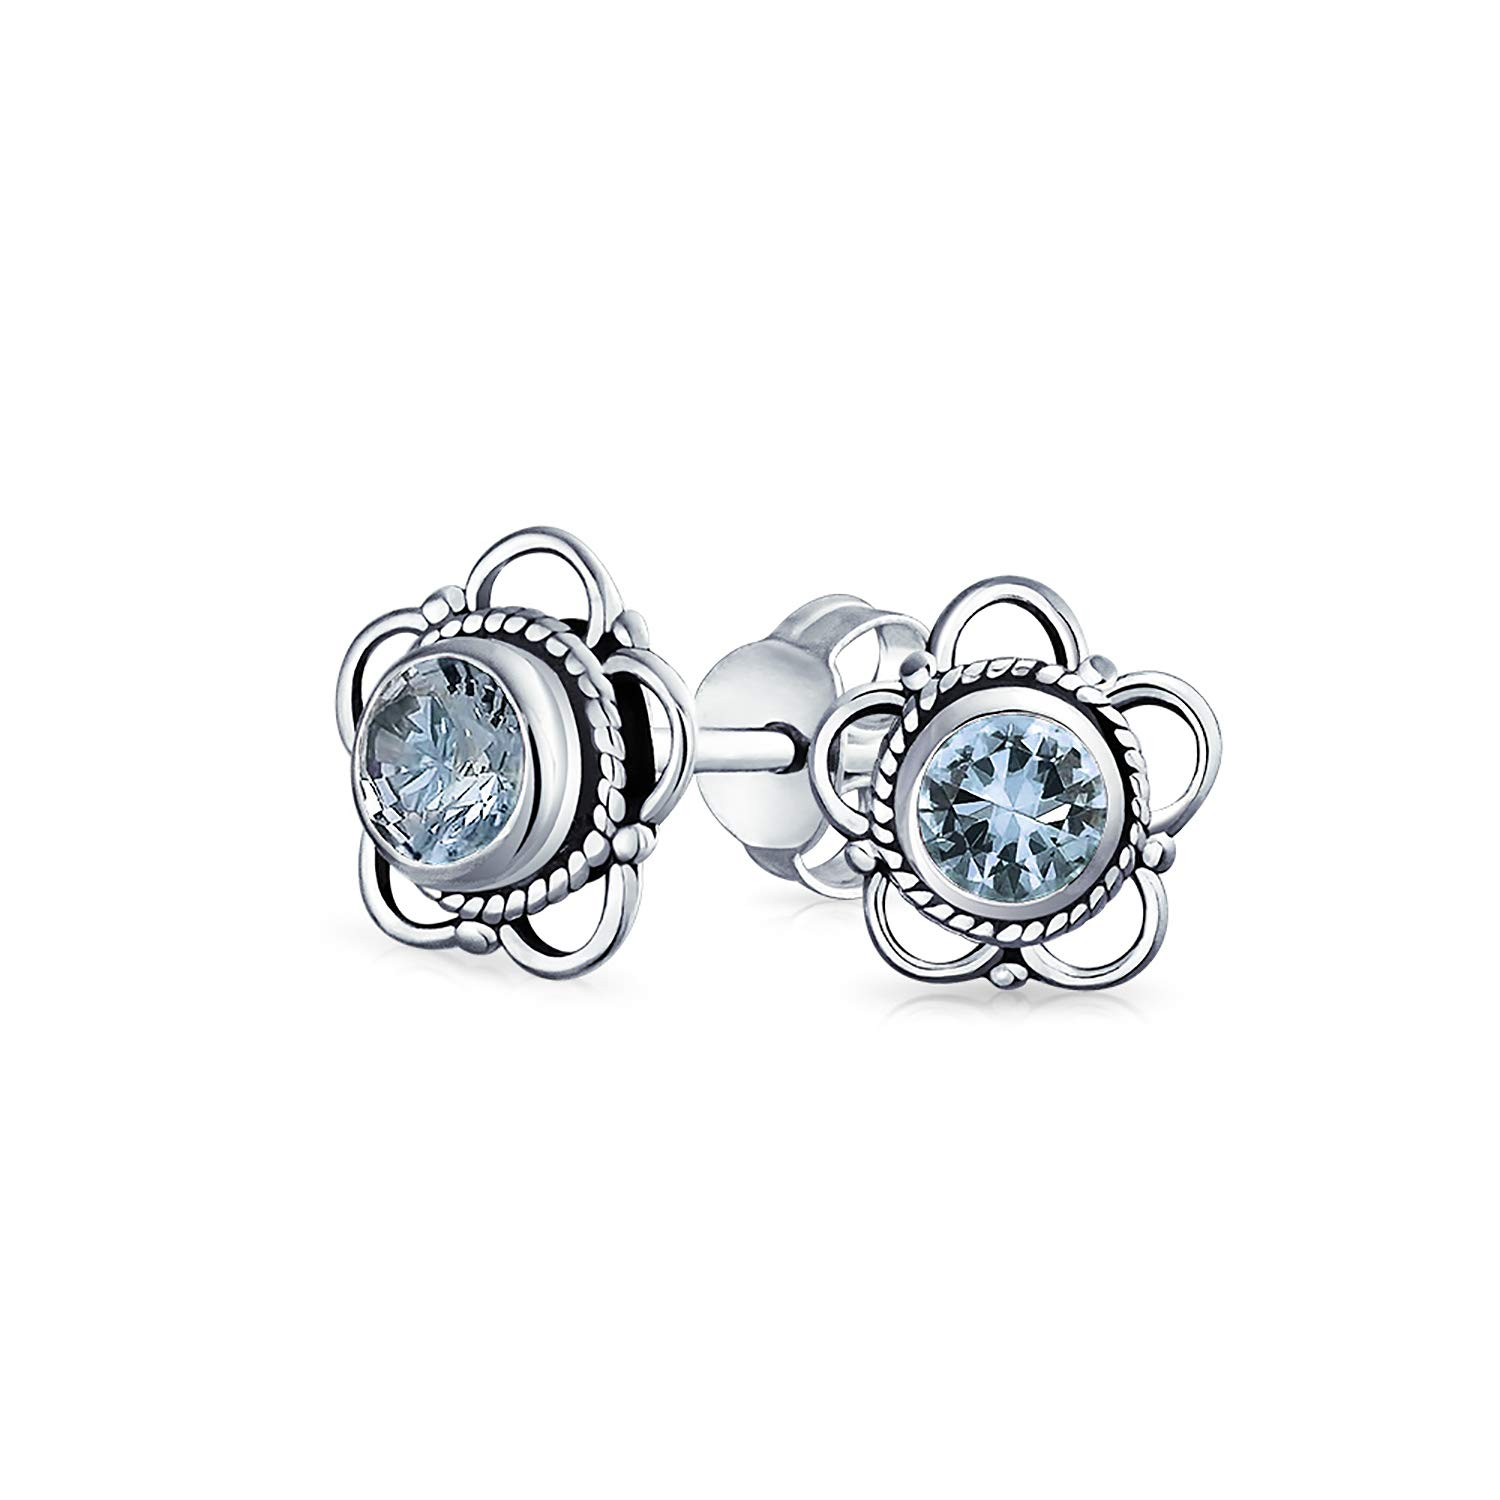 .6 CTW Flower Stud Filligree Earrings with Light Blue Topaz Gemstone 925 Silver Bling Jewelry N-PMR-521529BTR